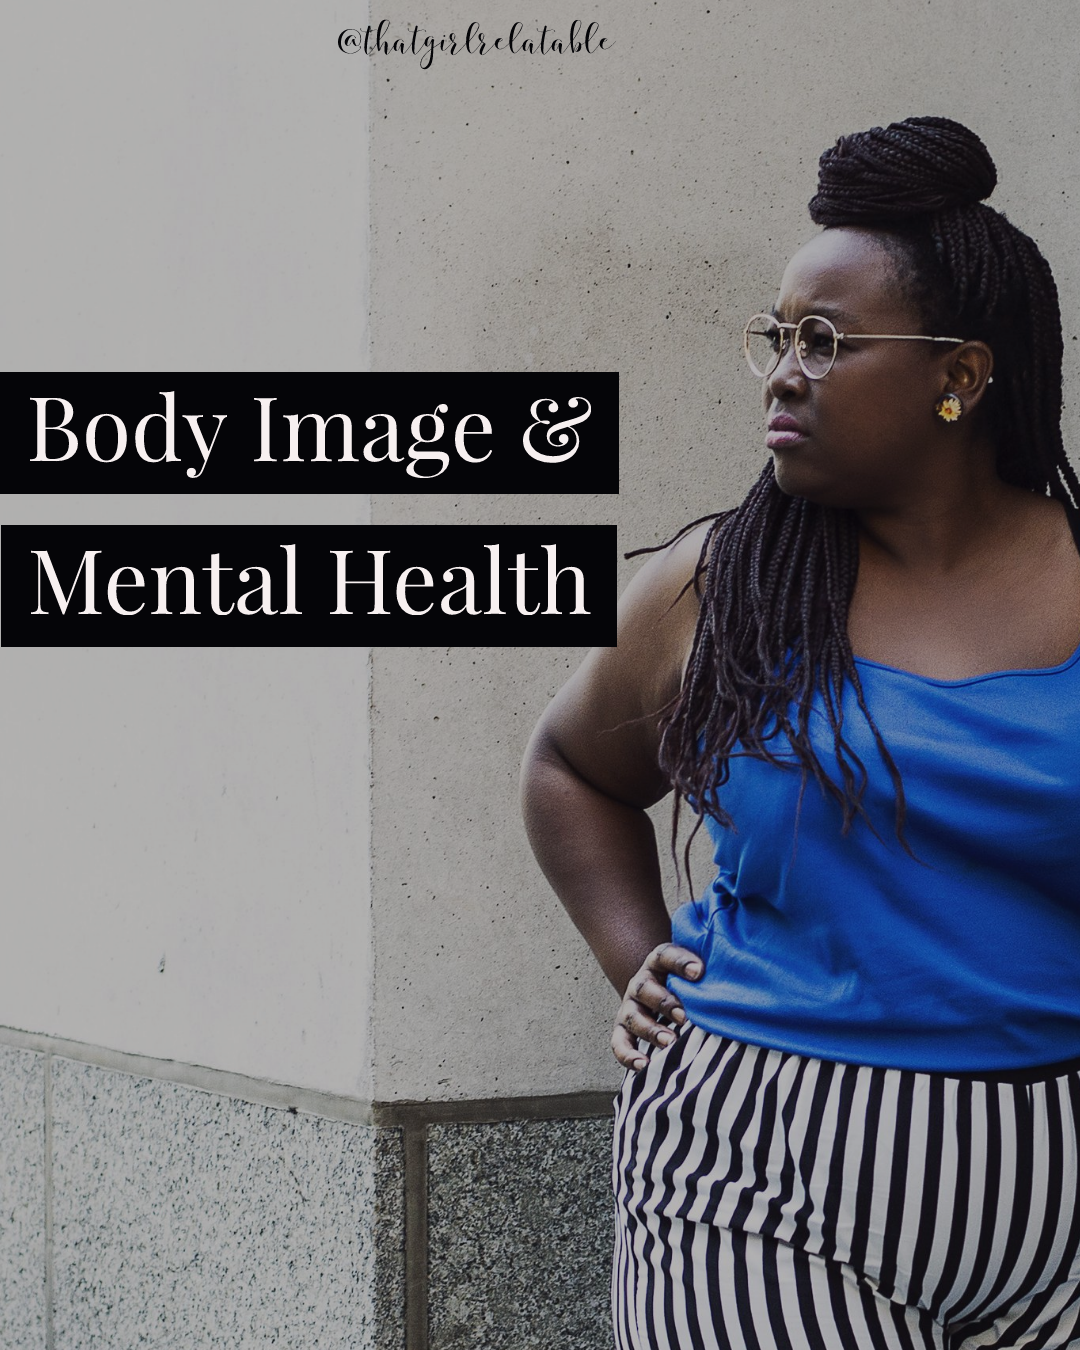 Body image & Mental Health